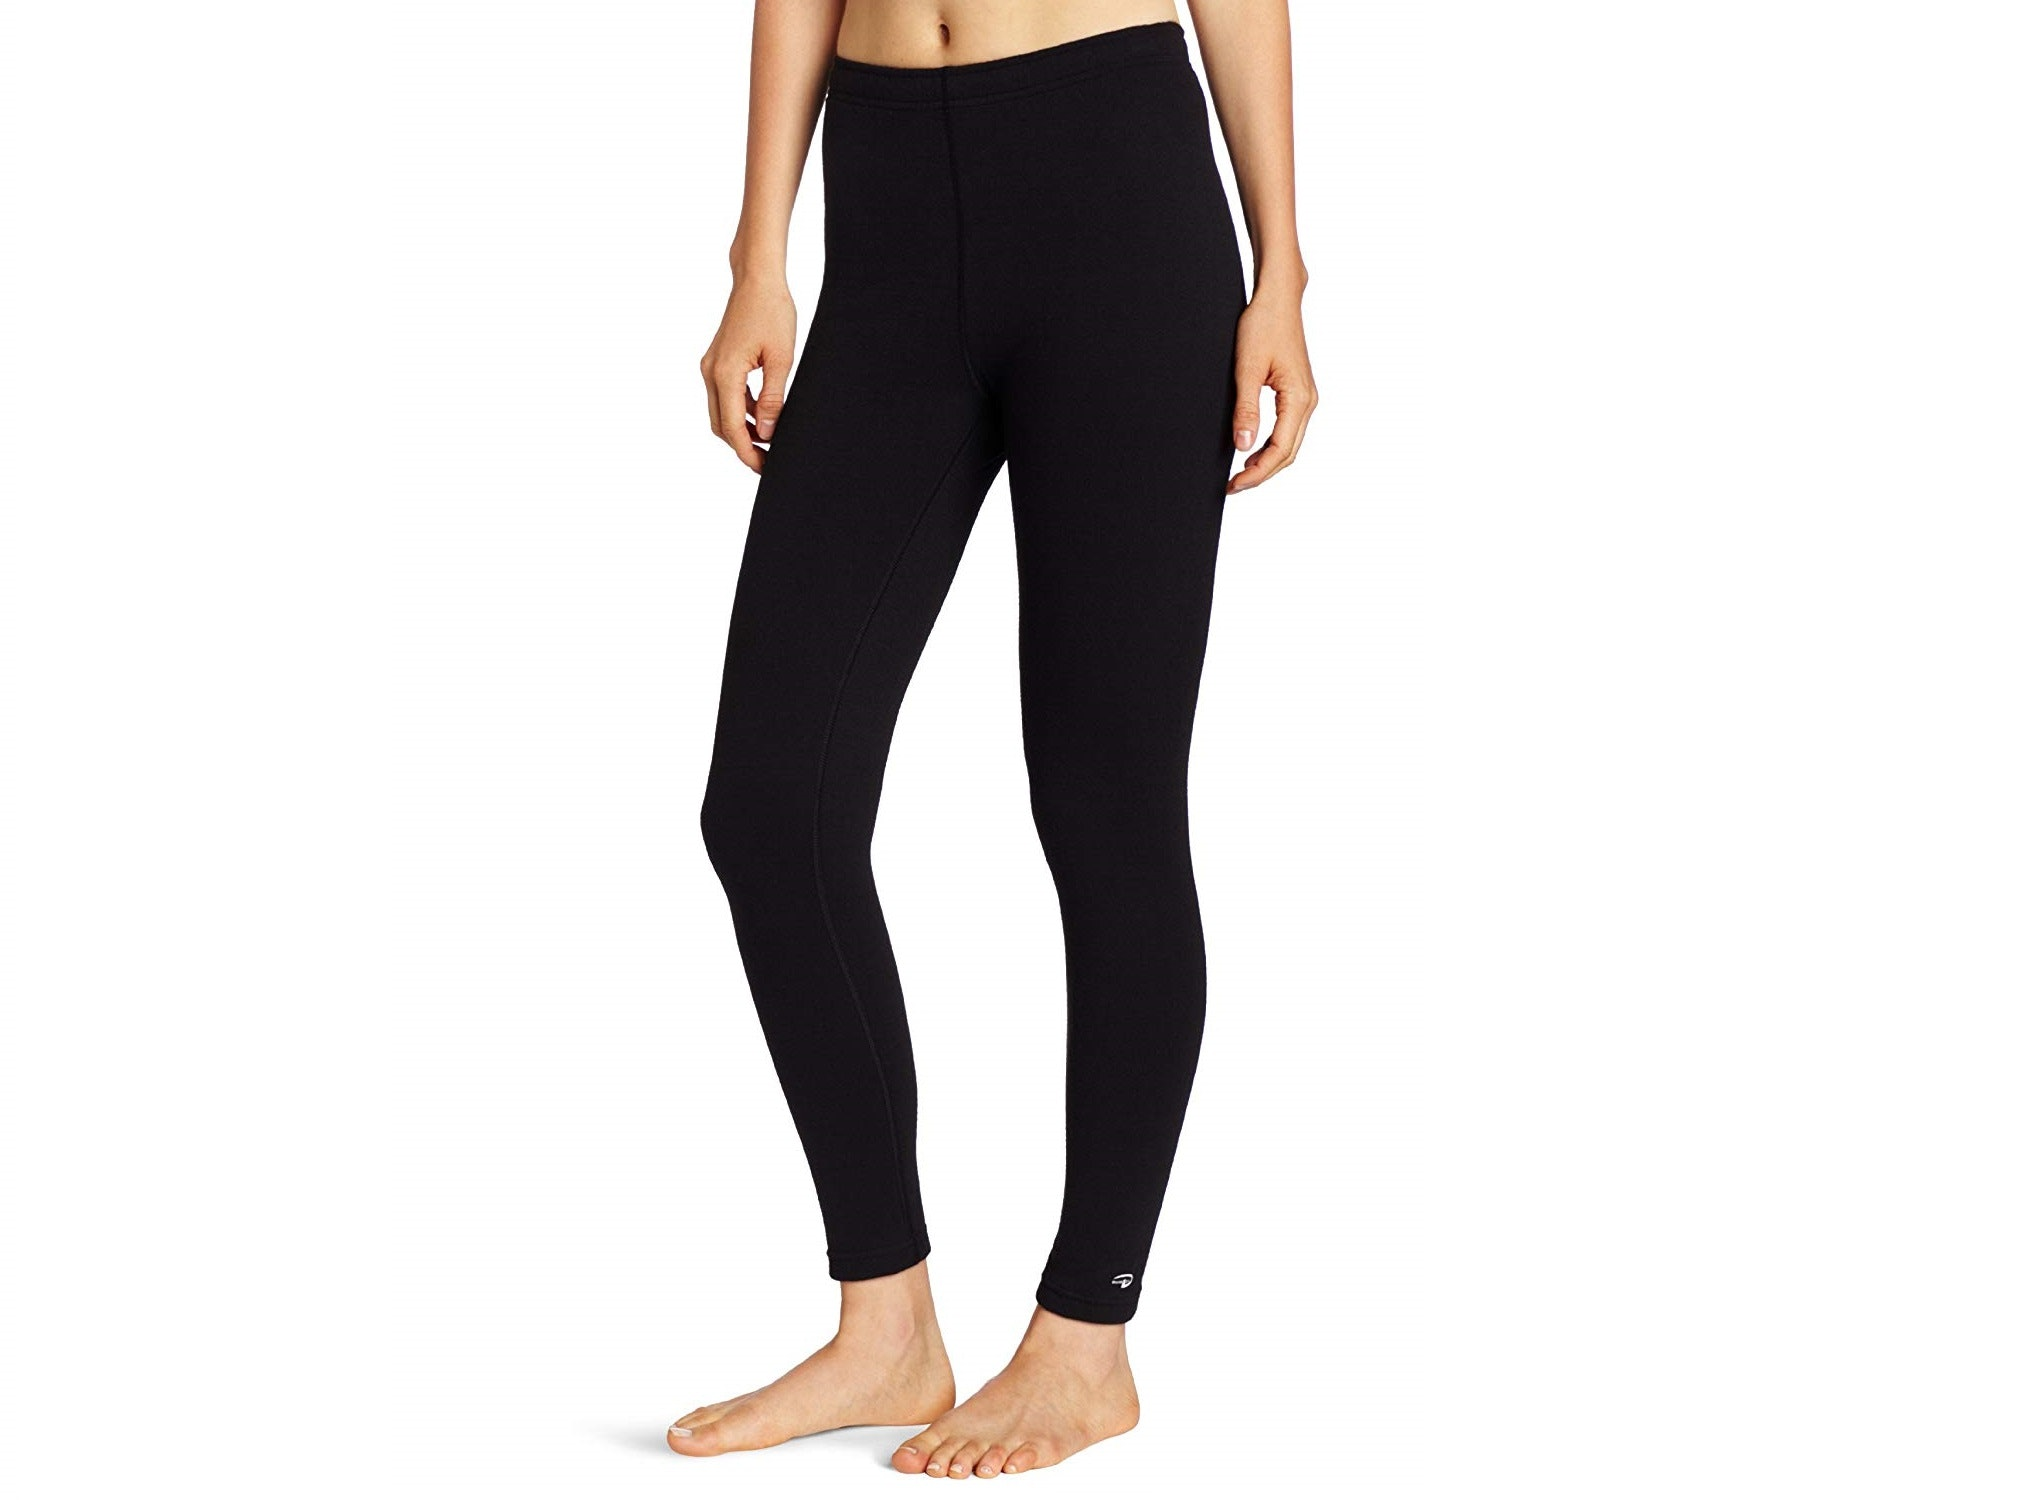 d93cc2affb741 The 11 Best Warm Leggings For Hiking